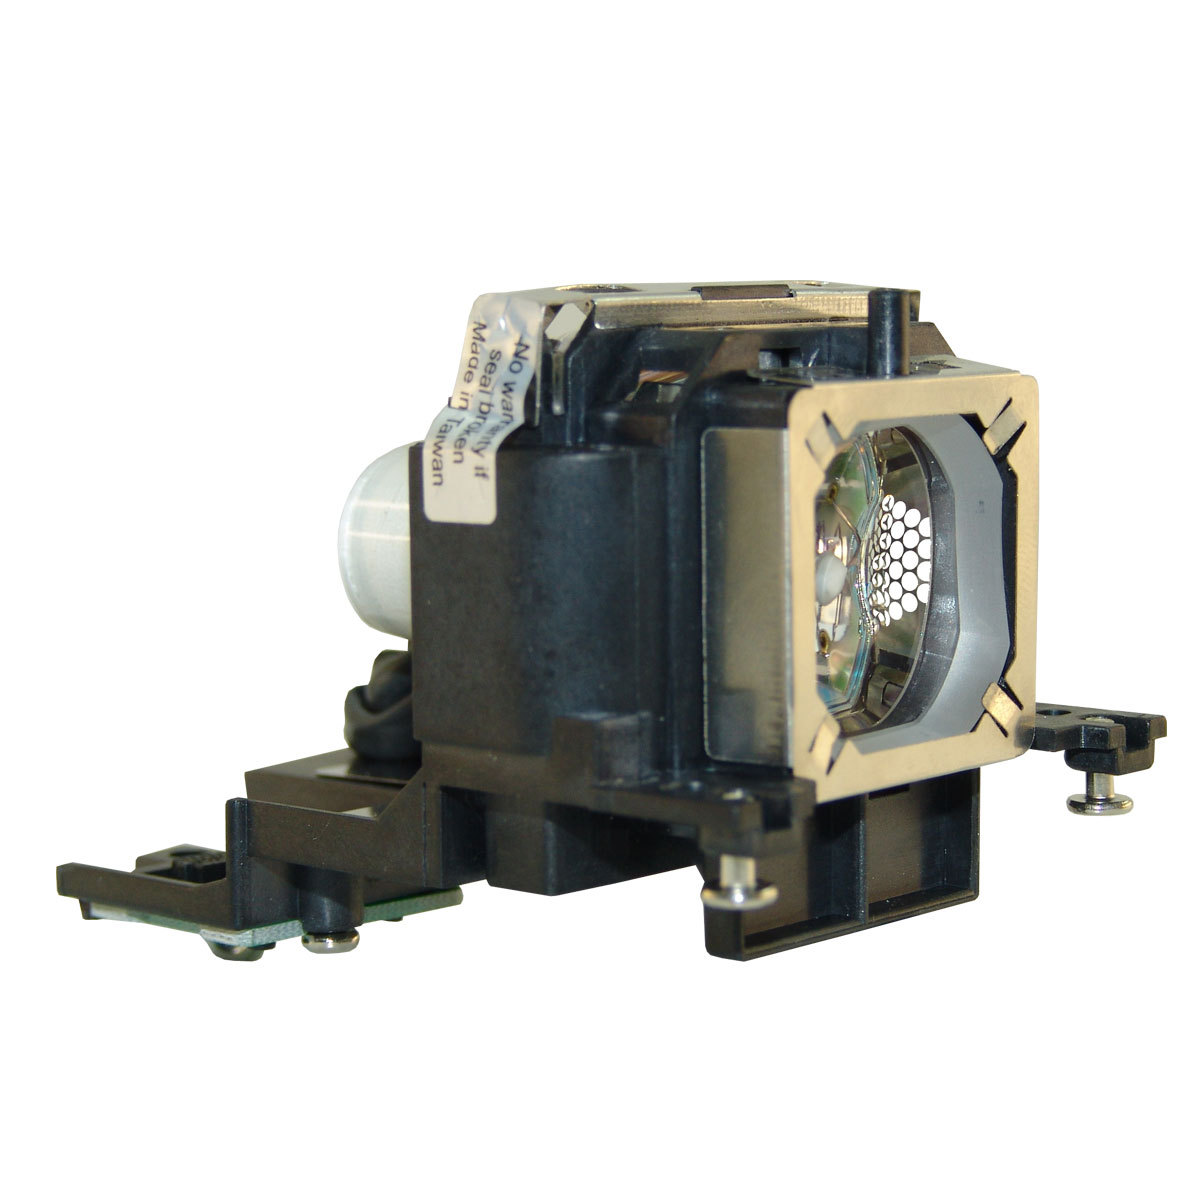 Primary image for Panasonic ET-SLMP131 Compatible Projector Lamp Module